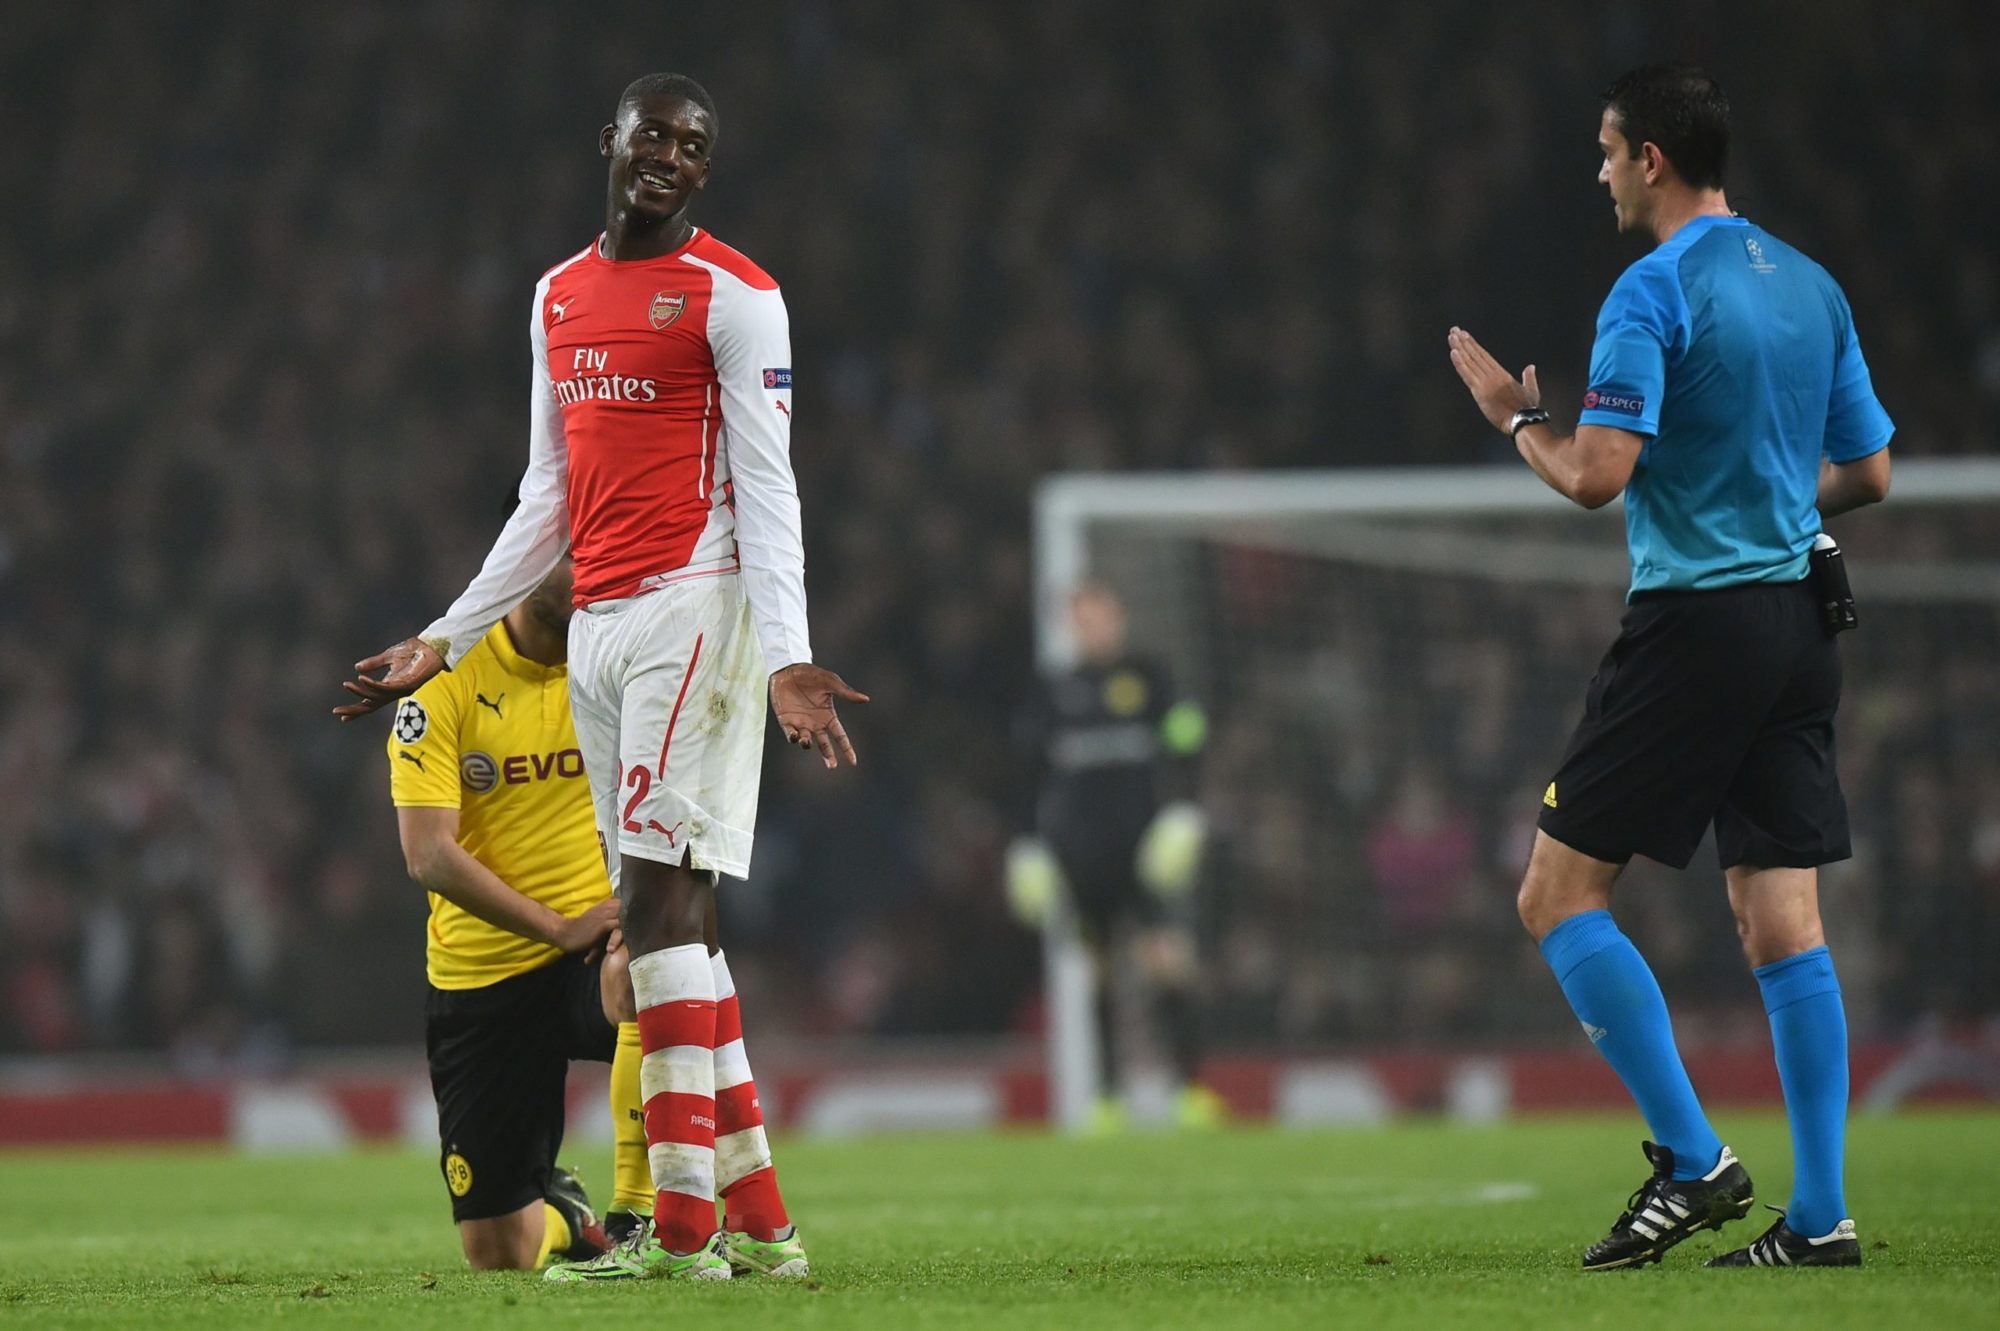 Arsenal's French striker Yaya Sanogo (2L) gestures to Hungarian referee Viktor Kassai (R) after bringing down Dortmund's German midfielder Ilkay Guendogan (L) during the UEFA Champions League Group D football match between Arsenal and Borussia Dortmund at the Emirates Stadium in north London on November 26, 2014. AFP PHOTO / BEN STANSALL